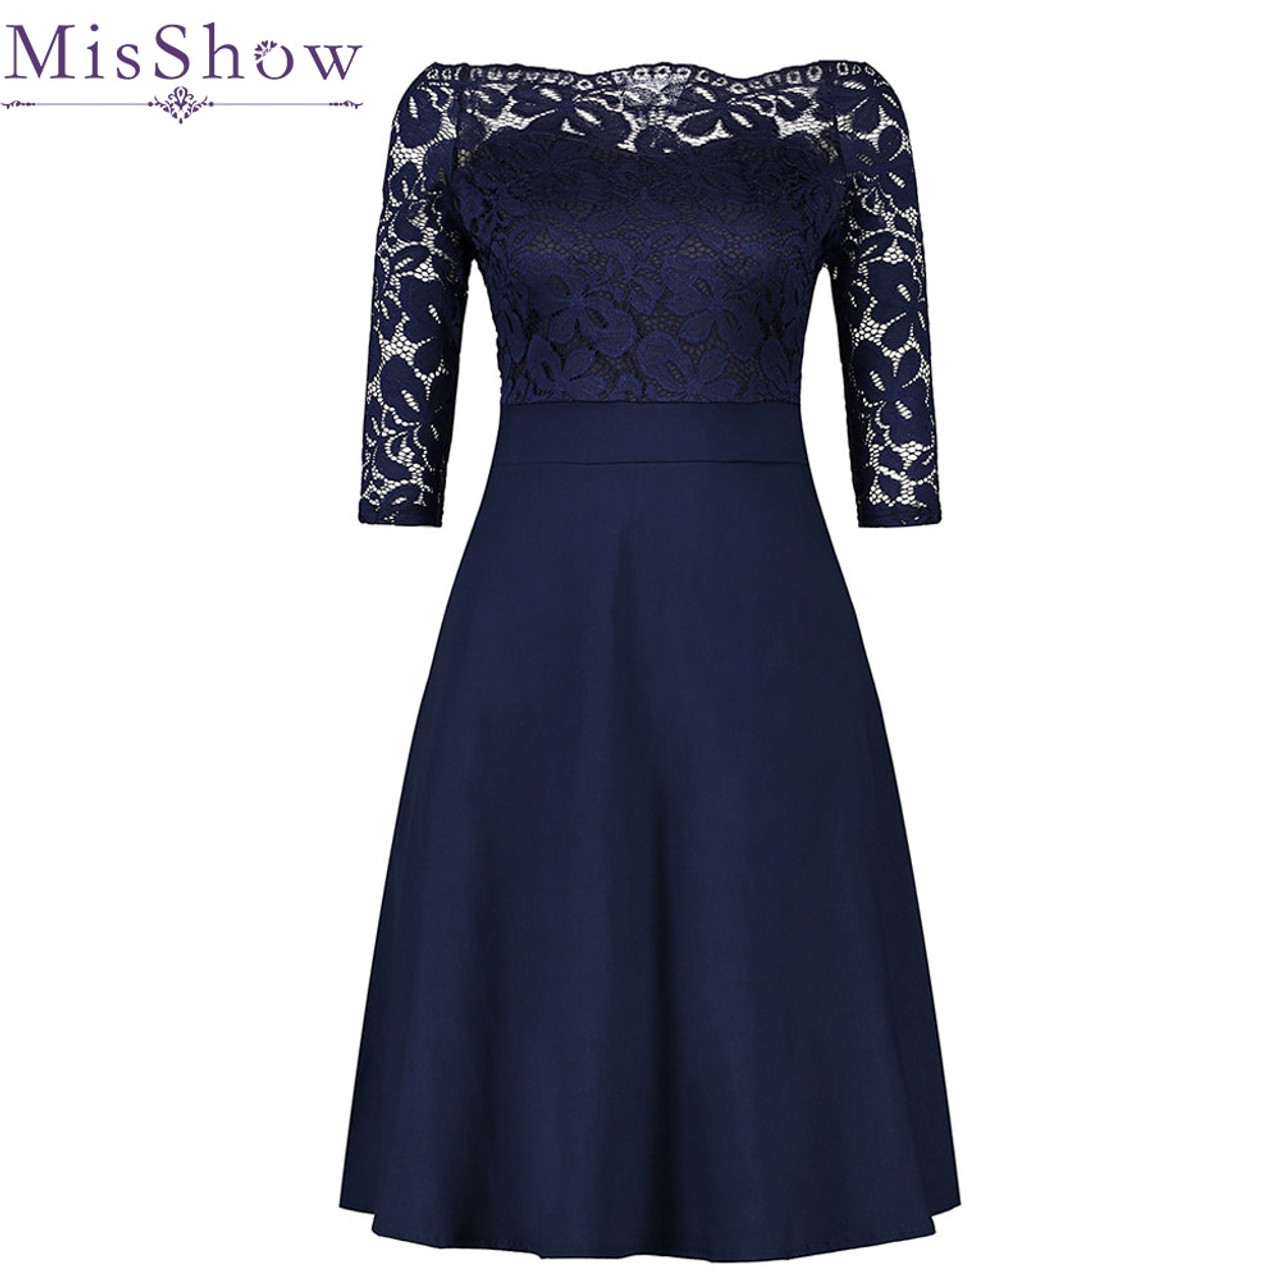 Cheap Navy Blue Cocktail Dresses Elegant Short Little Black Dress Lace Off  shoulder Formal Dresses Short Sleeve Satin Prom Gown - OnshopDeals.Com 24f7b7c35b7b